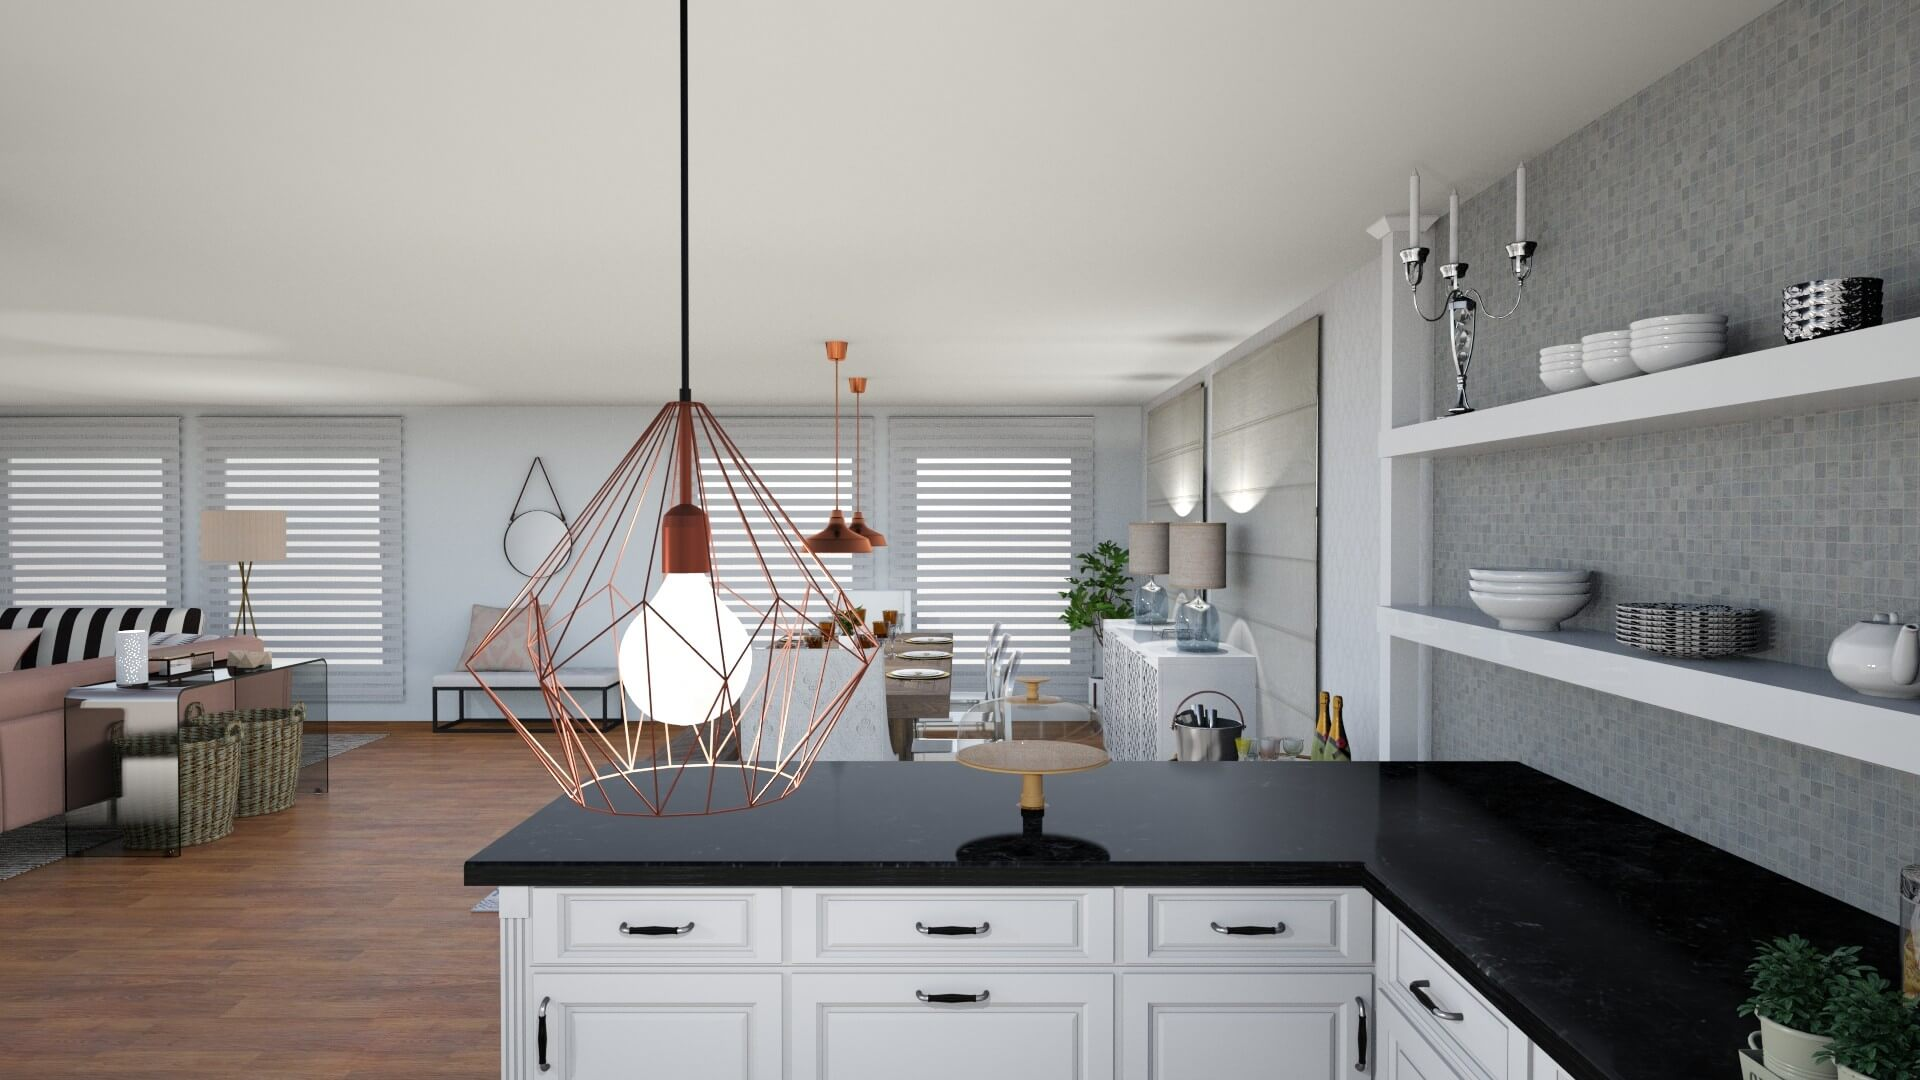 Sassy Charm L.A. Apartment by Albie Knows - Kitchen Lighting Detail